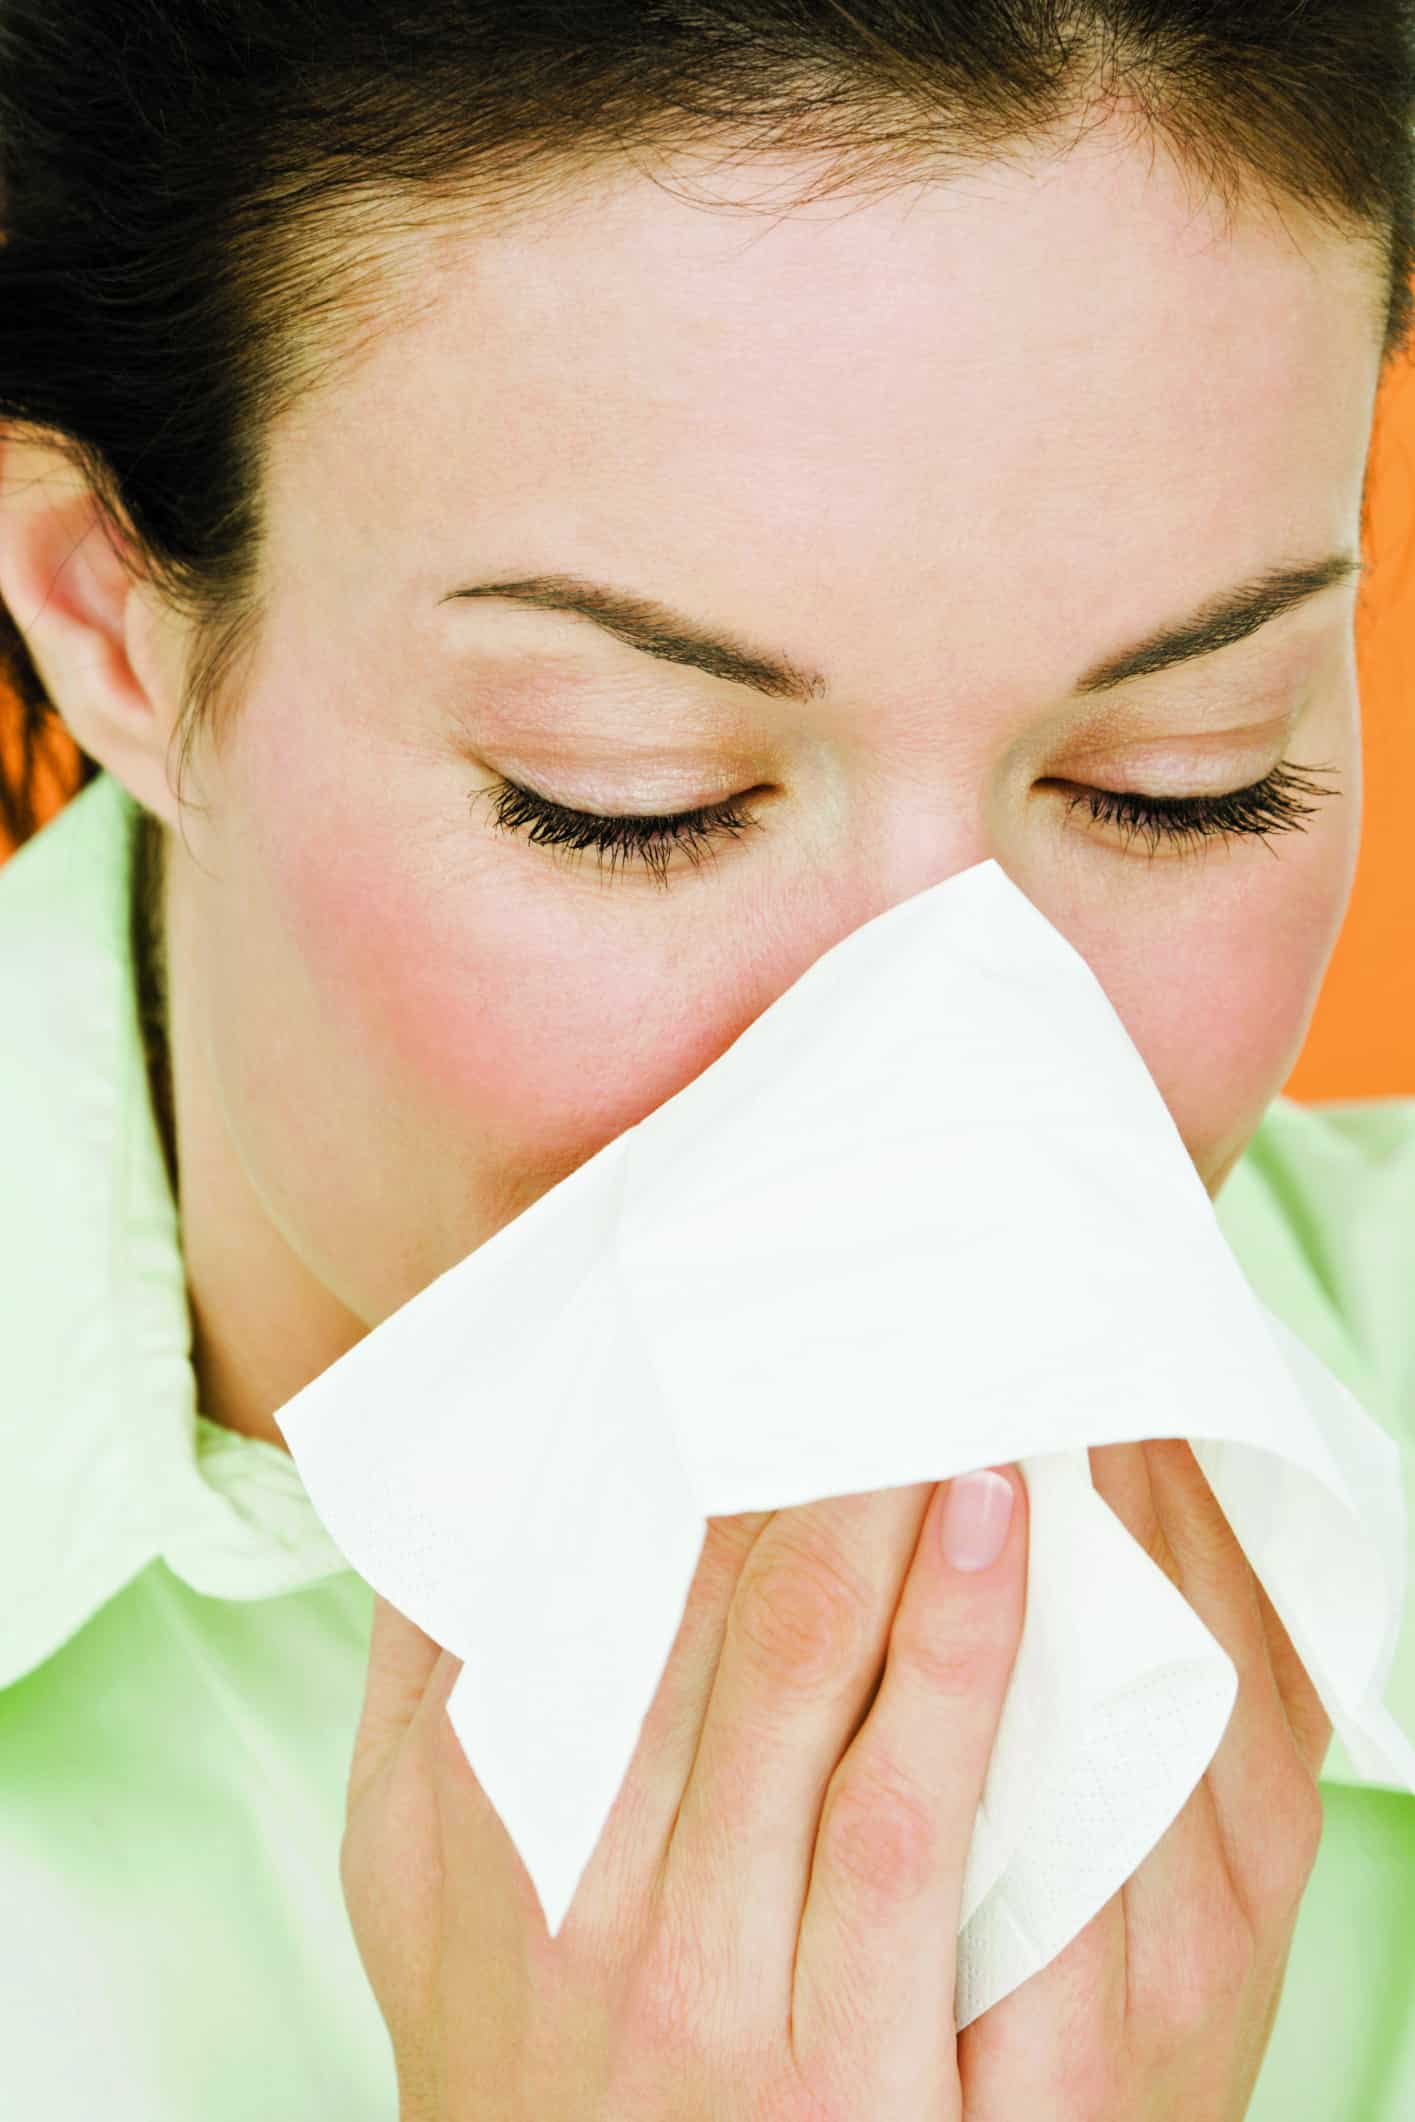 (Family Features) With cold and flu season upon us, it may be tempting to  hibernate until the danger of red, puffy eyes and a stuffy nose disappears.